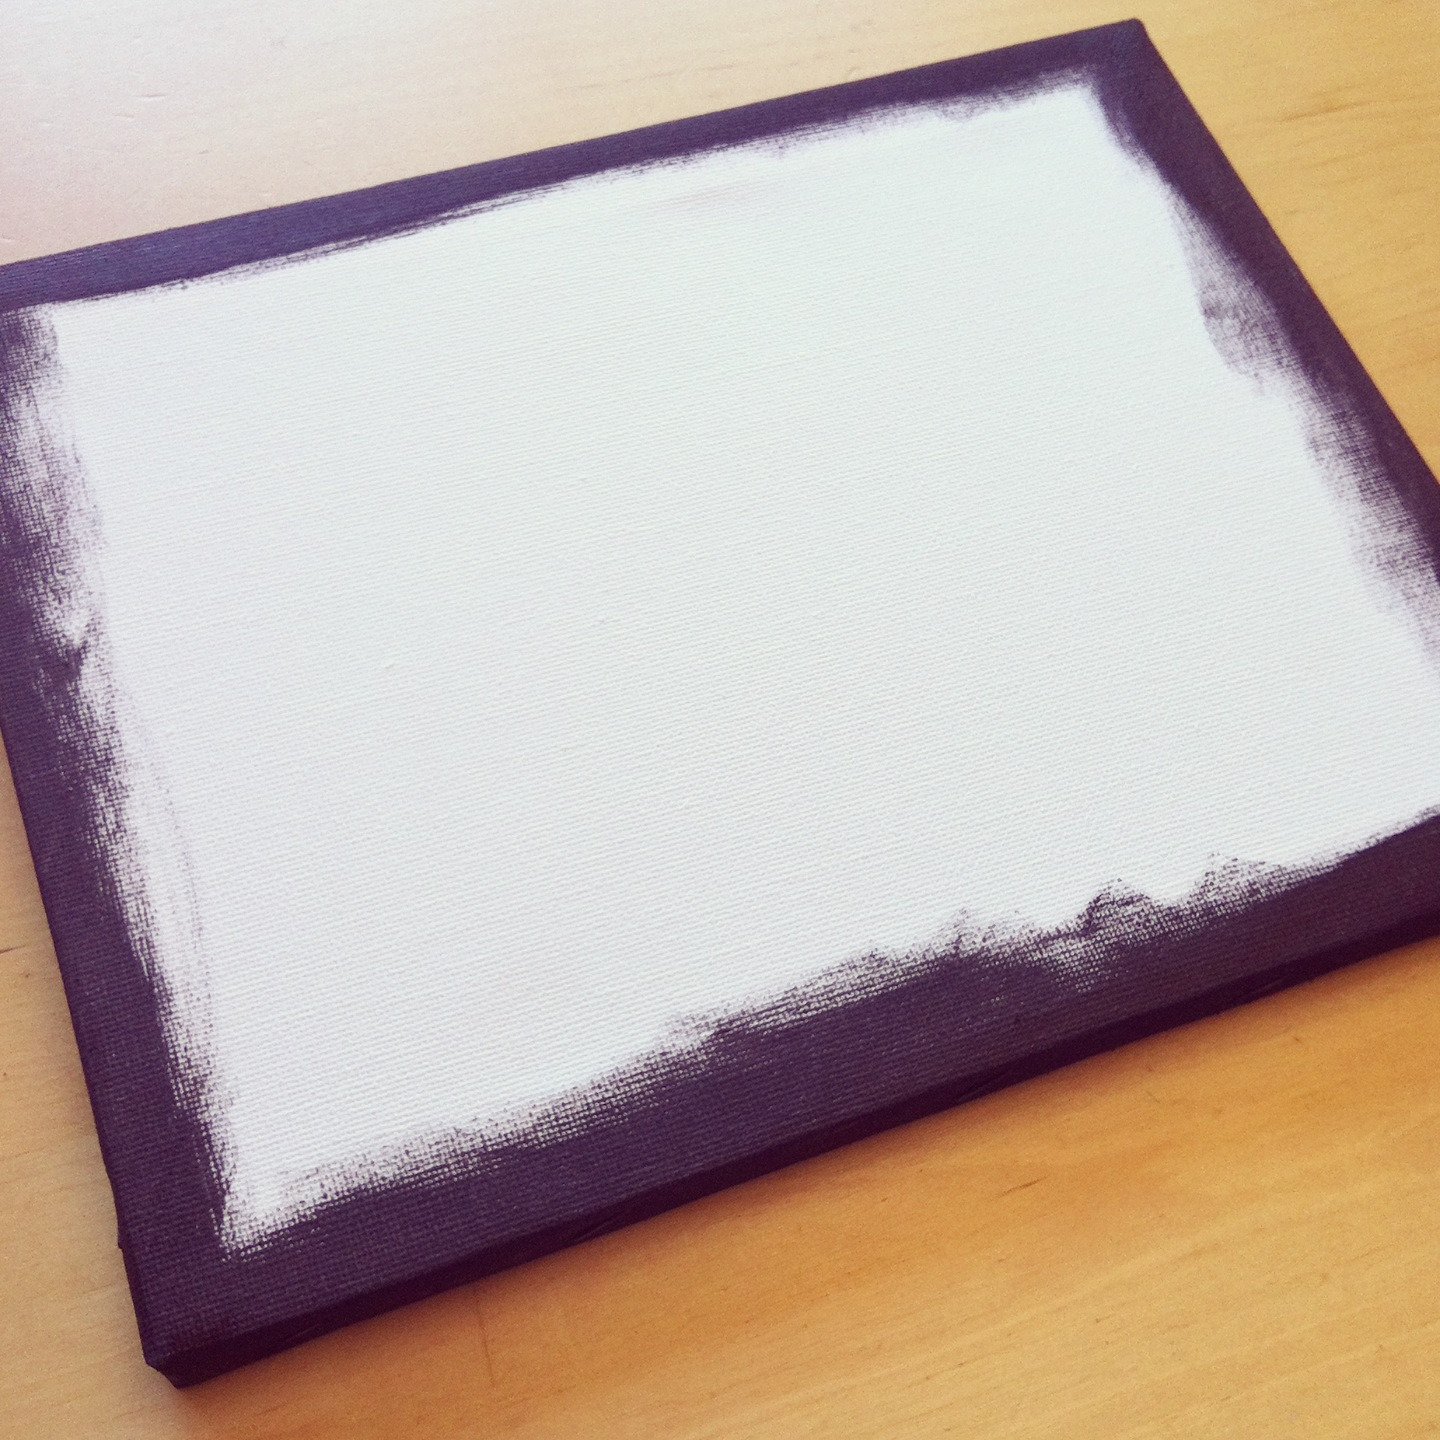 Mounting photo to canvas tutorial A great handmade gift for under $5.00 9